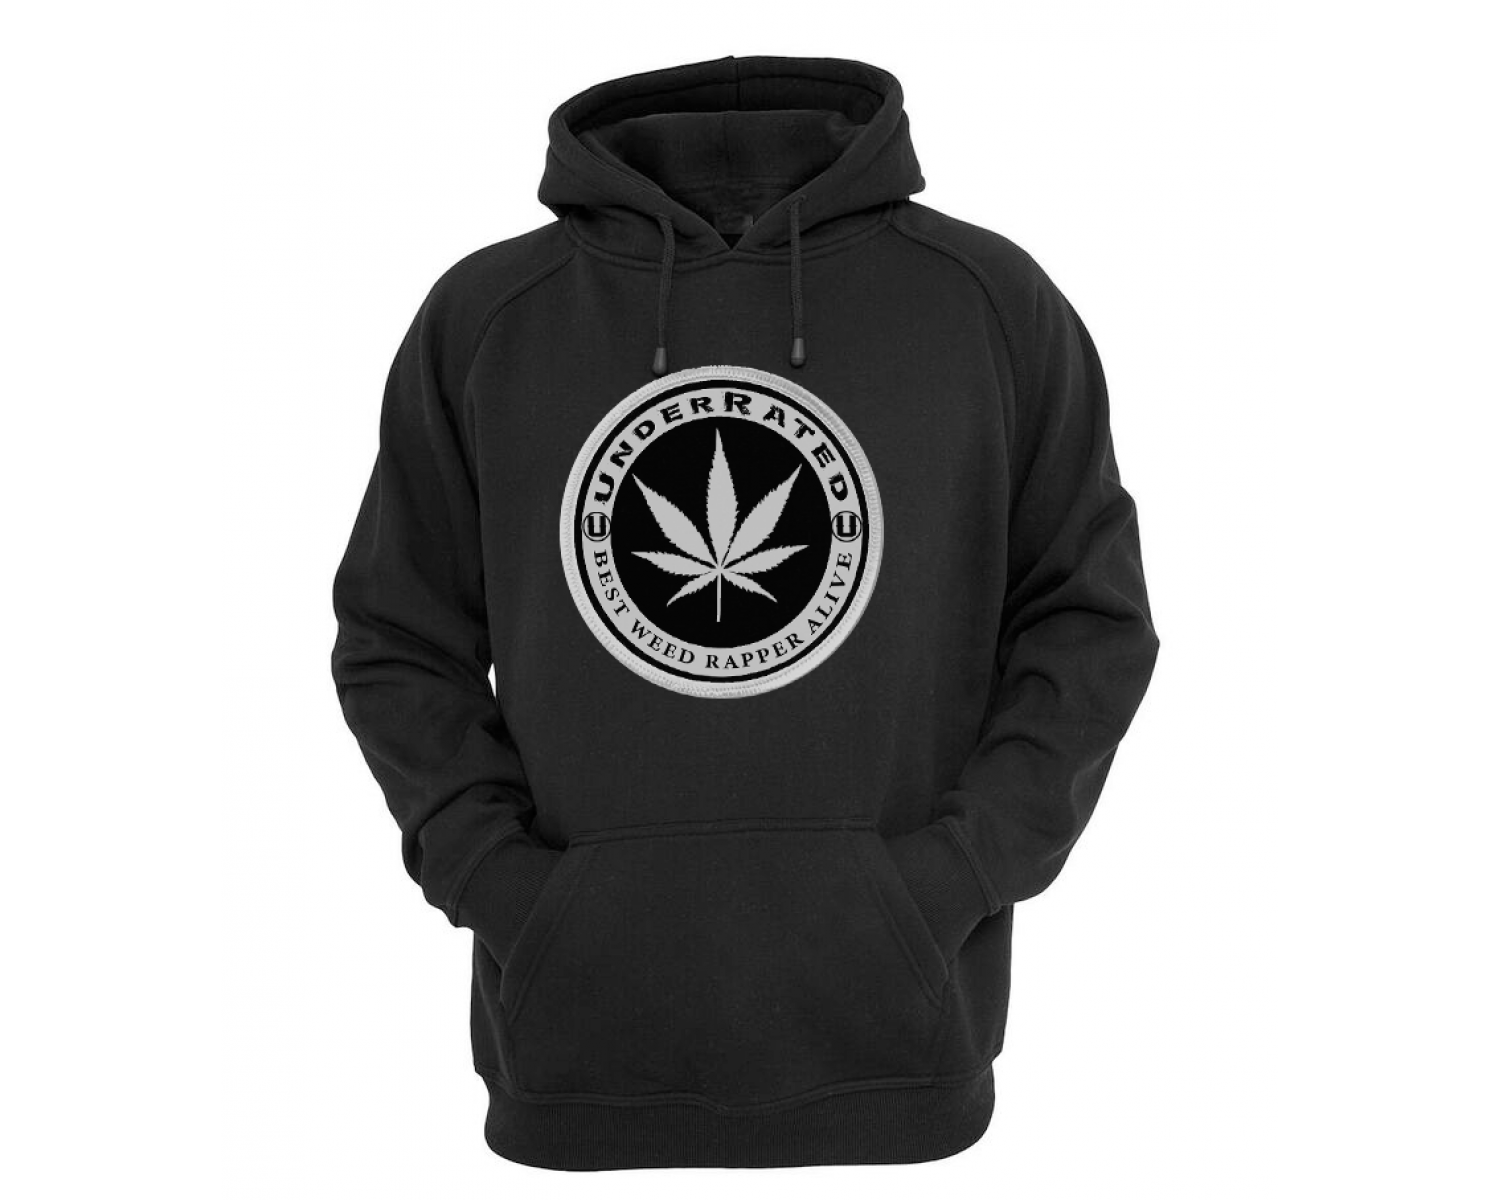 BWRA Hoodie (limited sizes left)